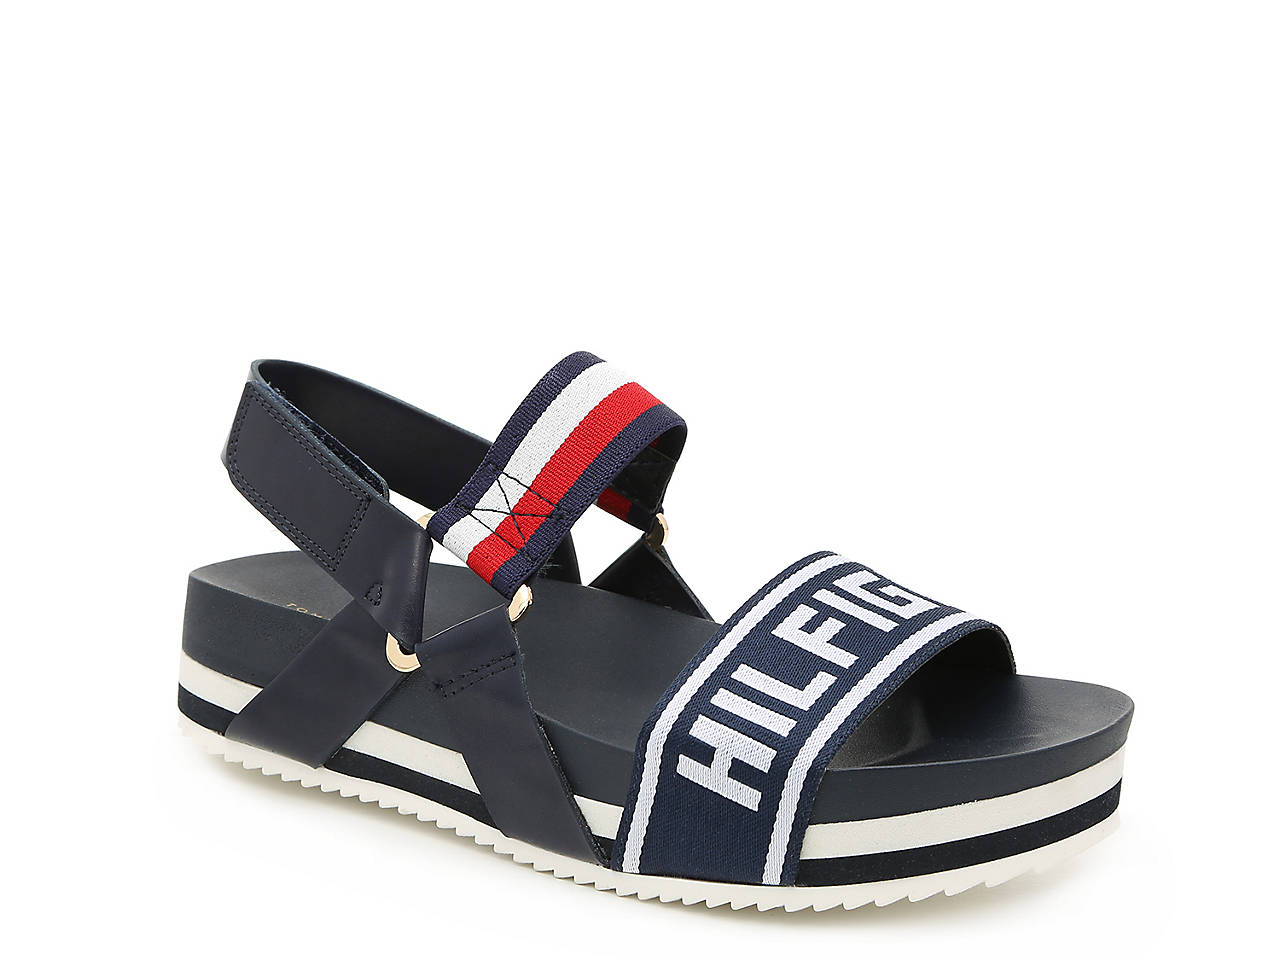 d9063d229b4 Tommy Hilfiger Bekett Platform Sandal Men s Shoes